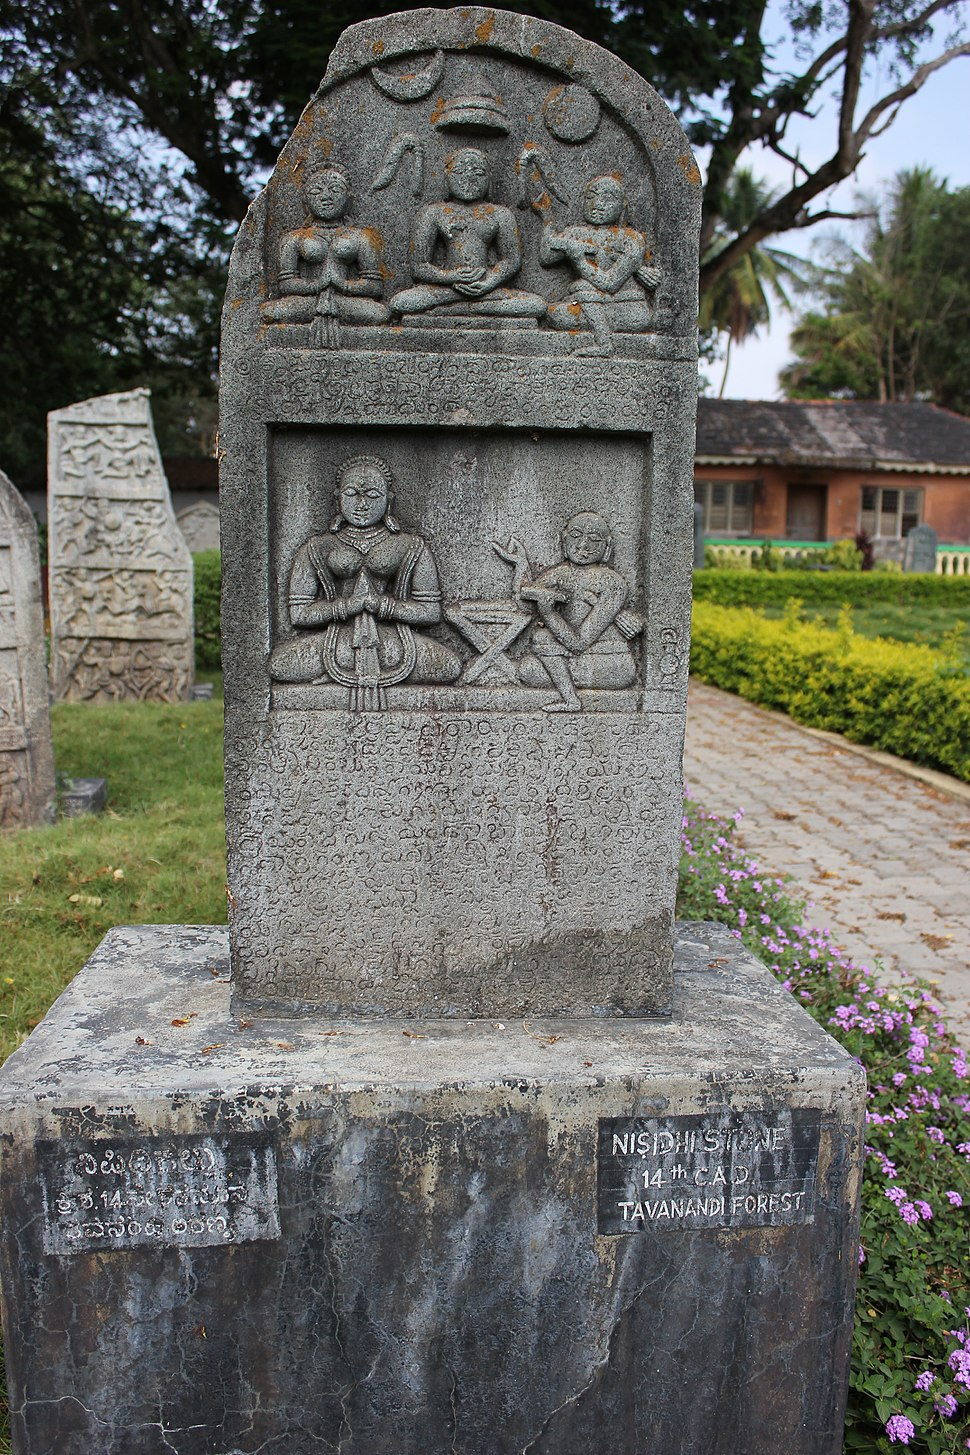 Nishidhi stone with 14th century Old Kannada inscription from Tavanandi forest